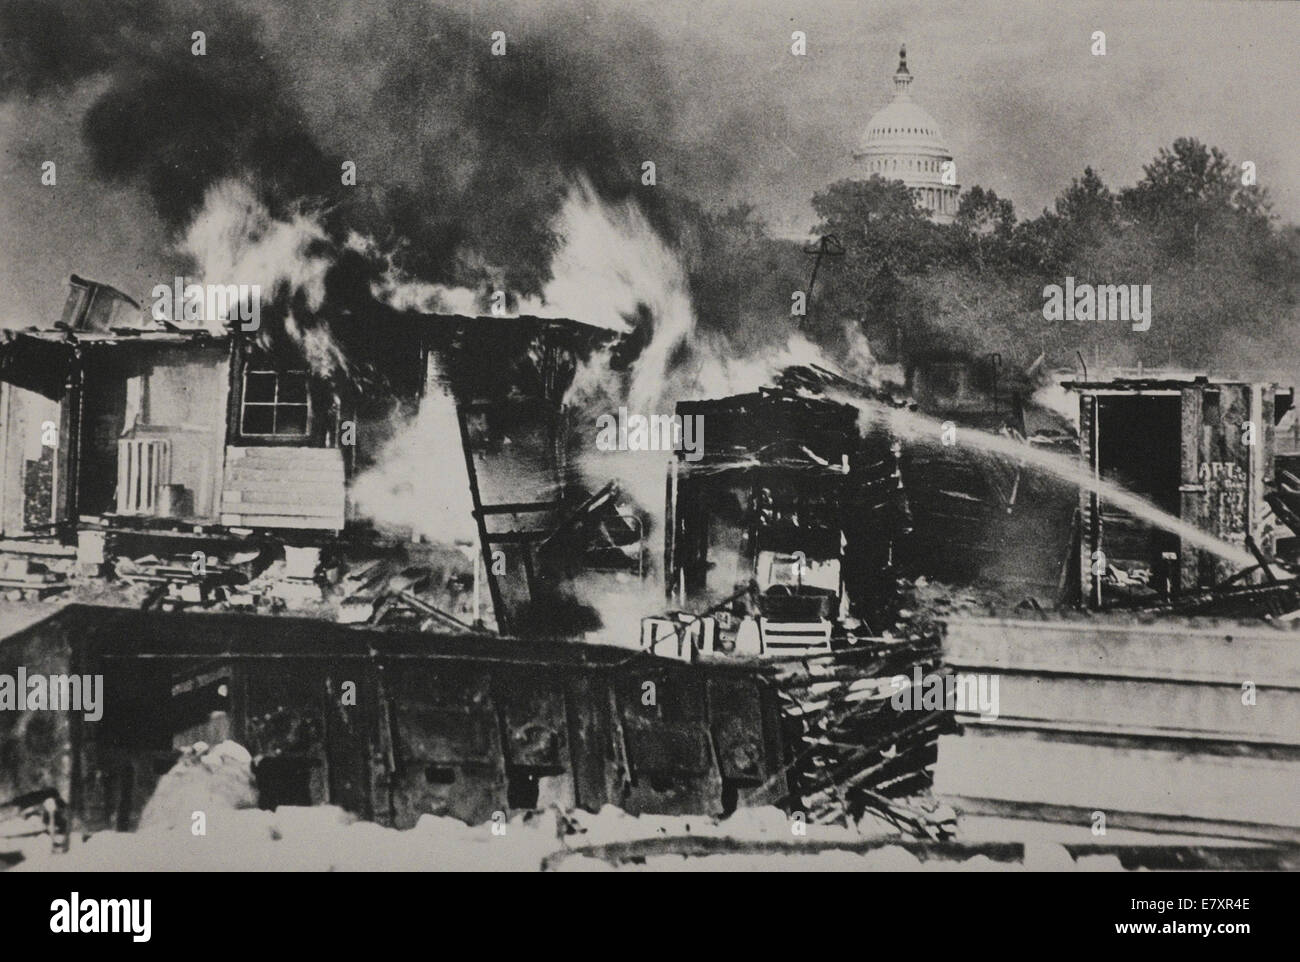 Shacks that members of the Bonus Army erected on the Anacostia Flats burning after the confrontation with the military. Stock Photo